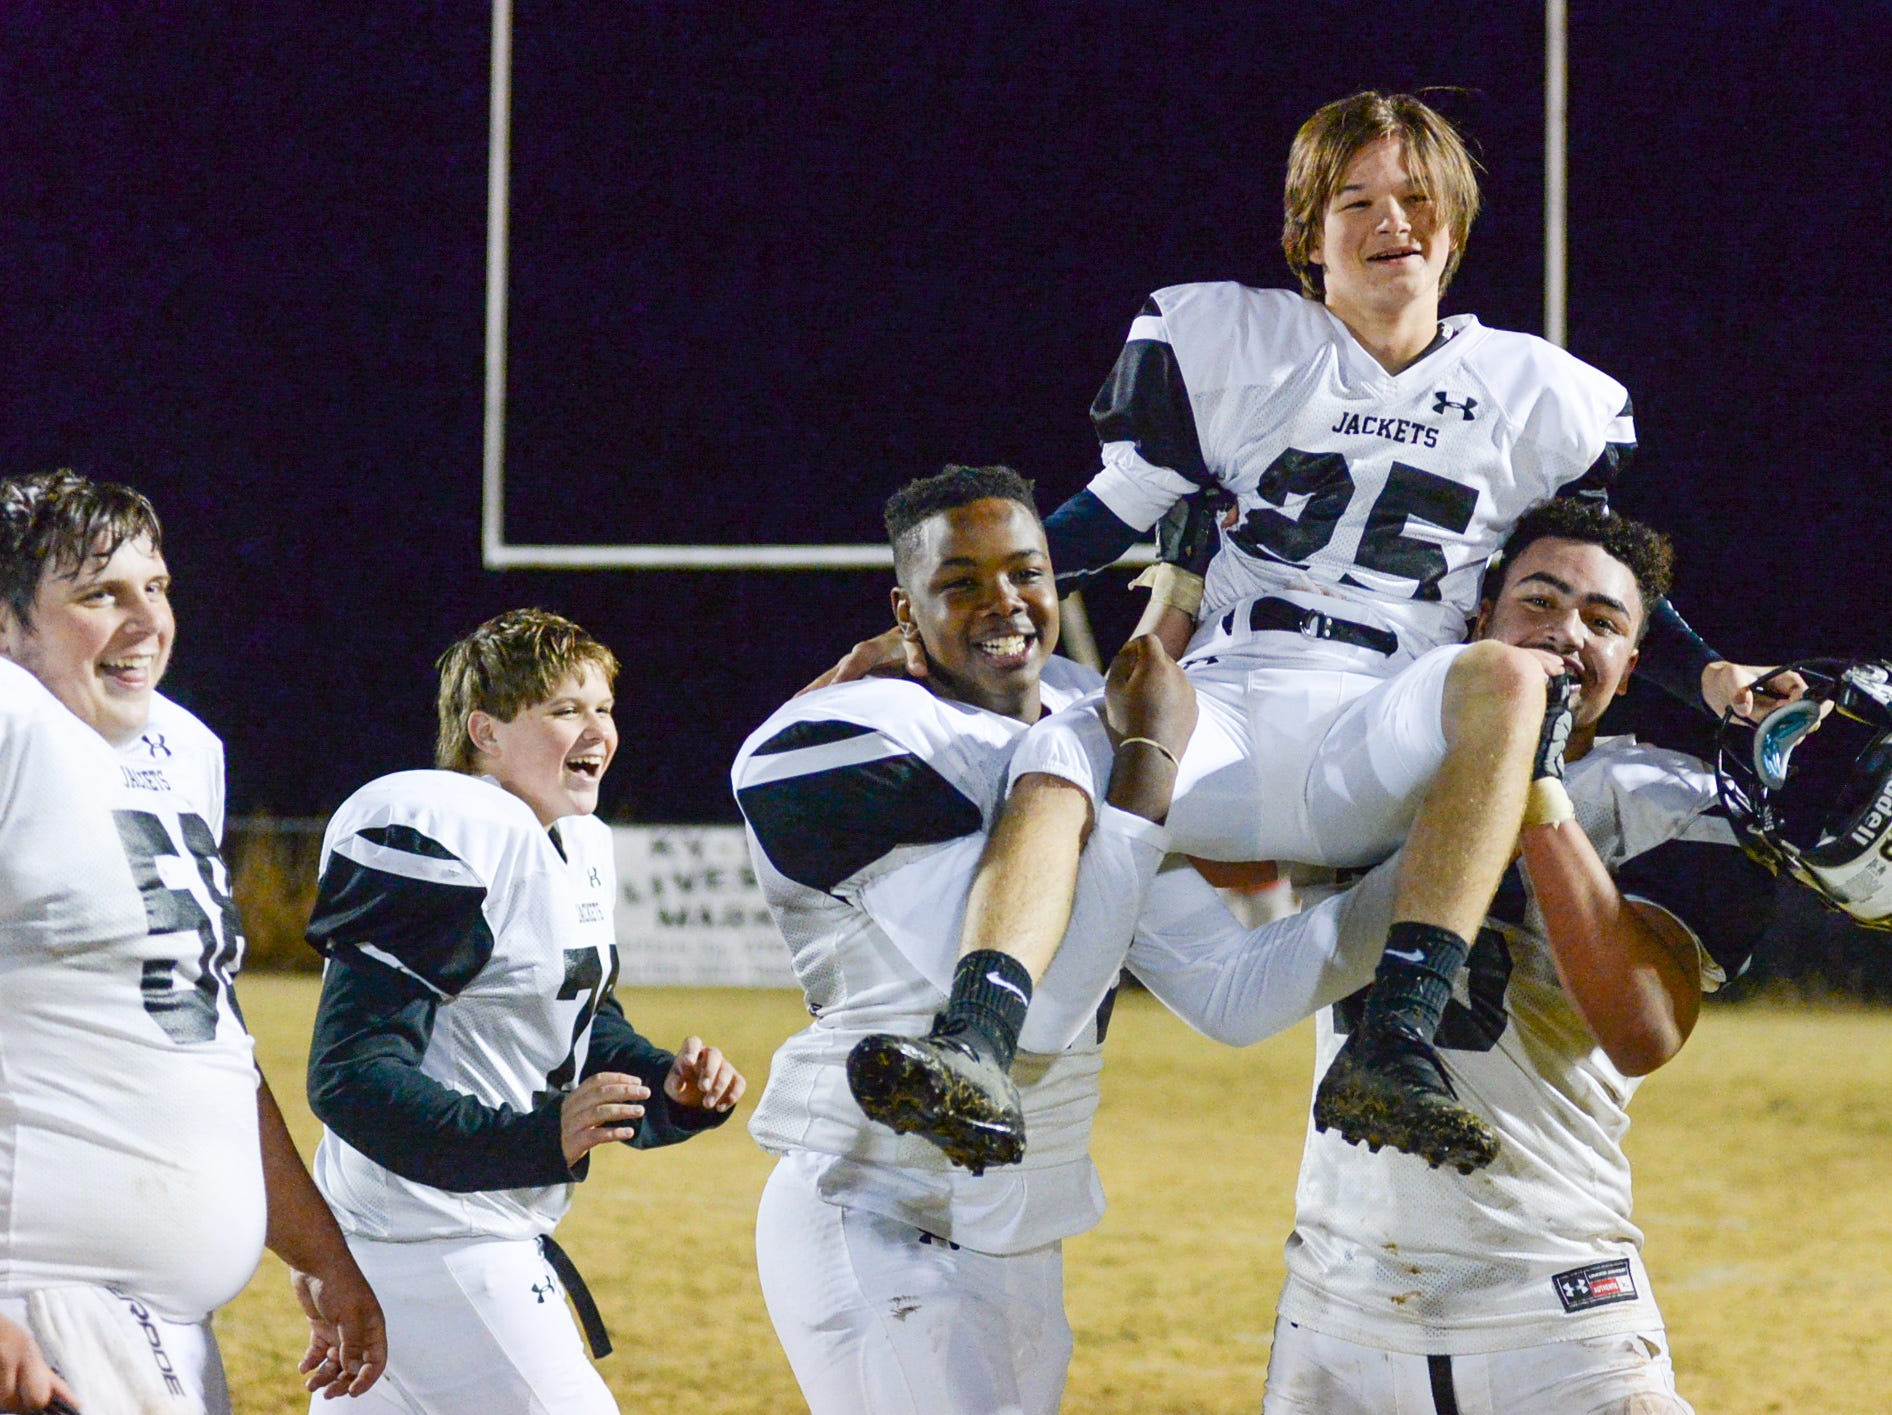 Lookout Valley players celebrate a victory after a game against Jo Byrns High School at Jo Byrns High School on Friday, Nov. 2.